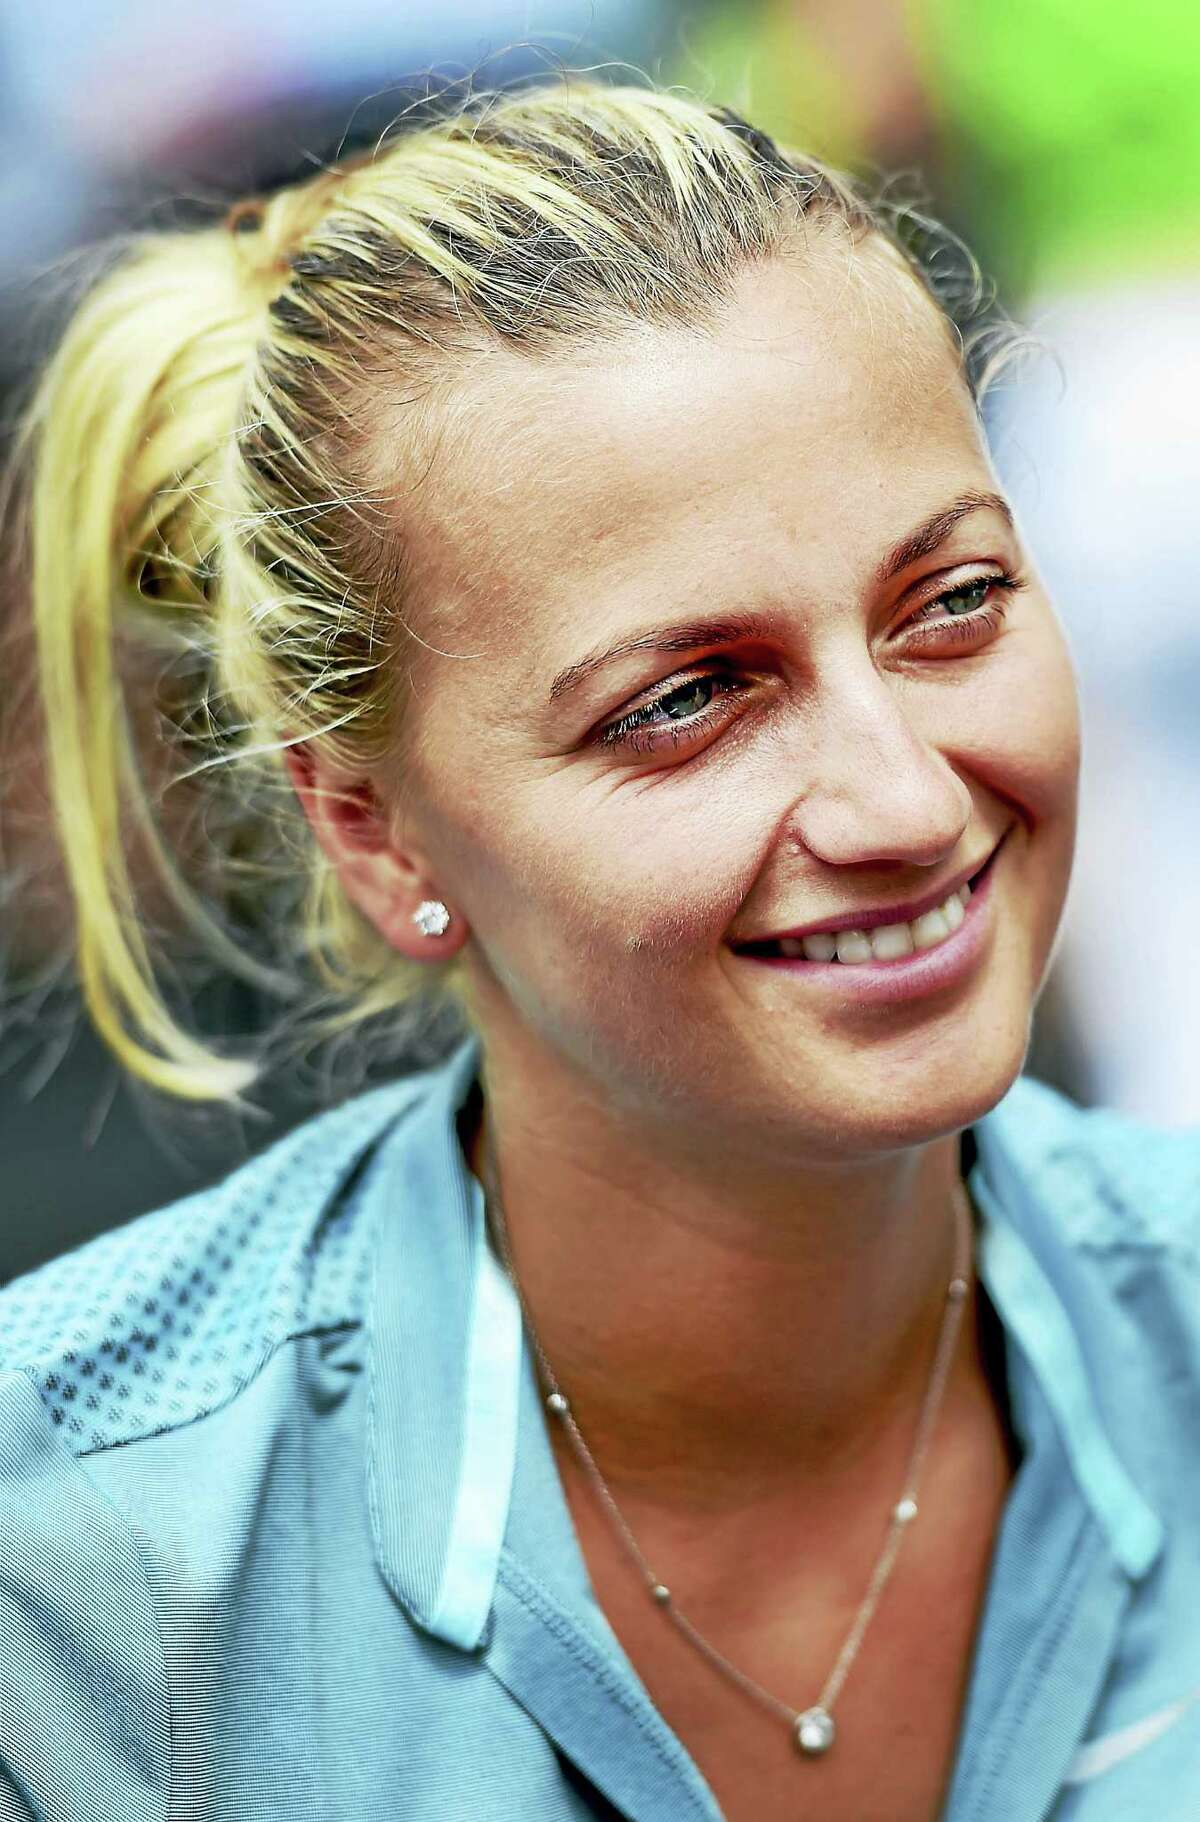 Petra Kvitova is seeking her third consecutive Connecticut Open title this week.